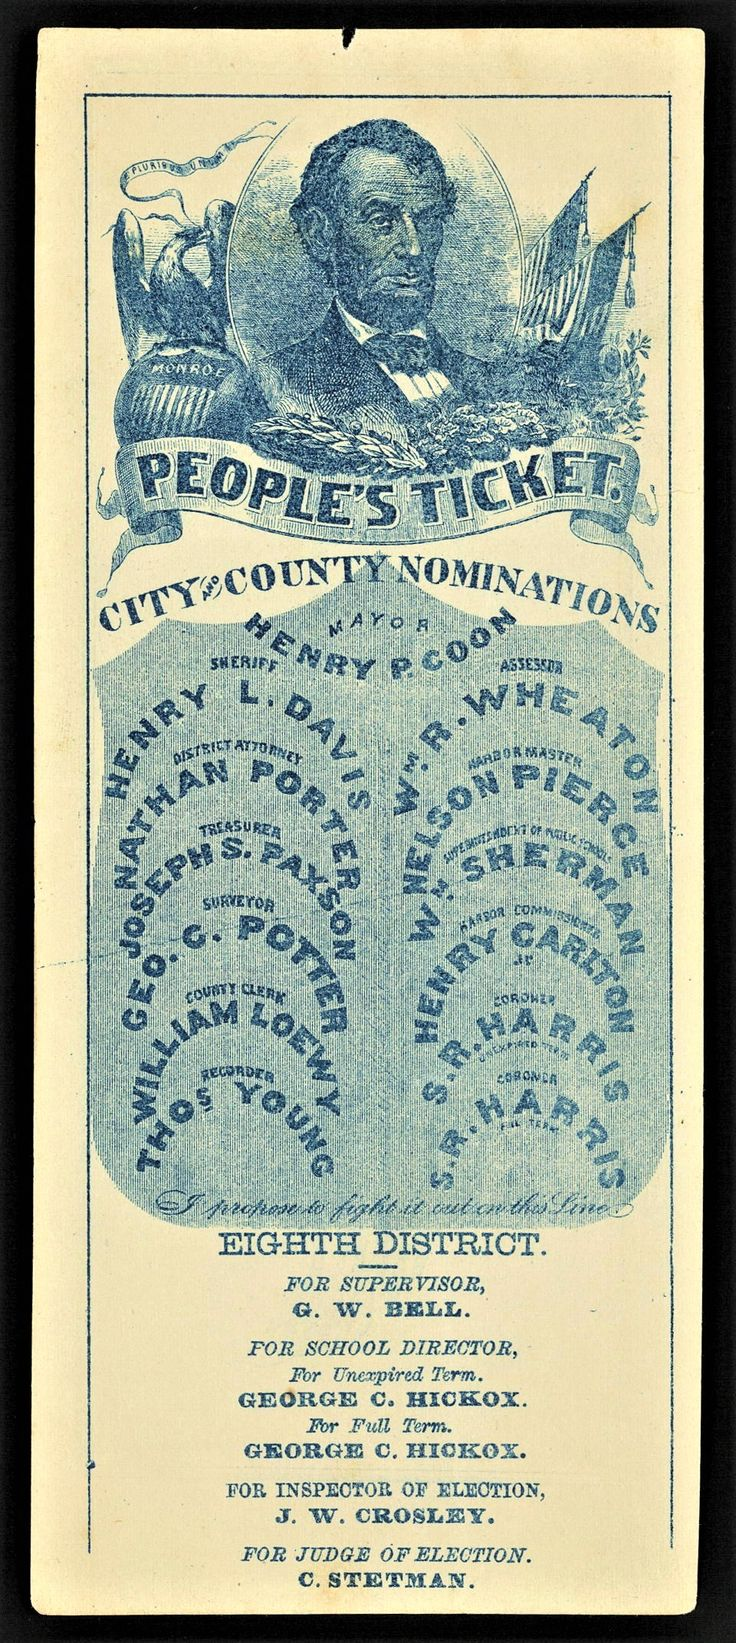 1862 California Republican (People's) Ticket -  Abraham Lincoln portrait, Republican Party -  Eighth District